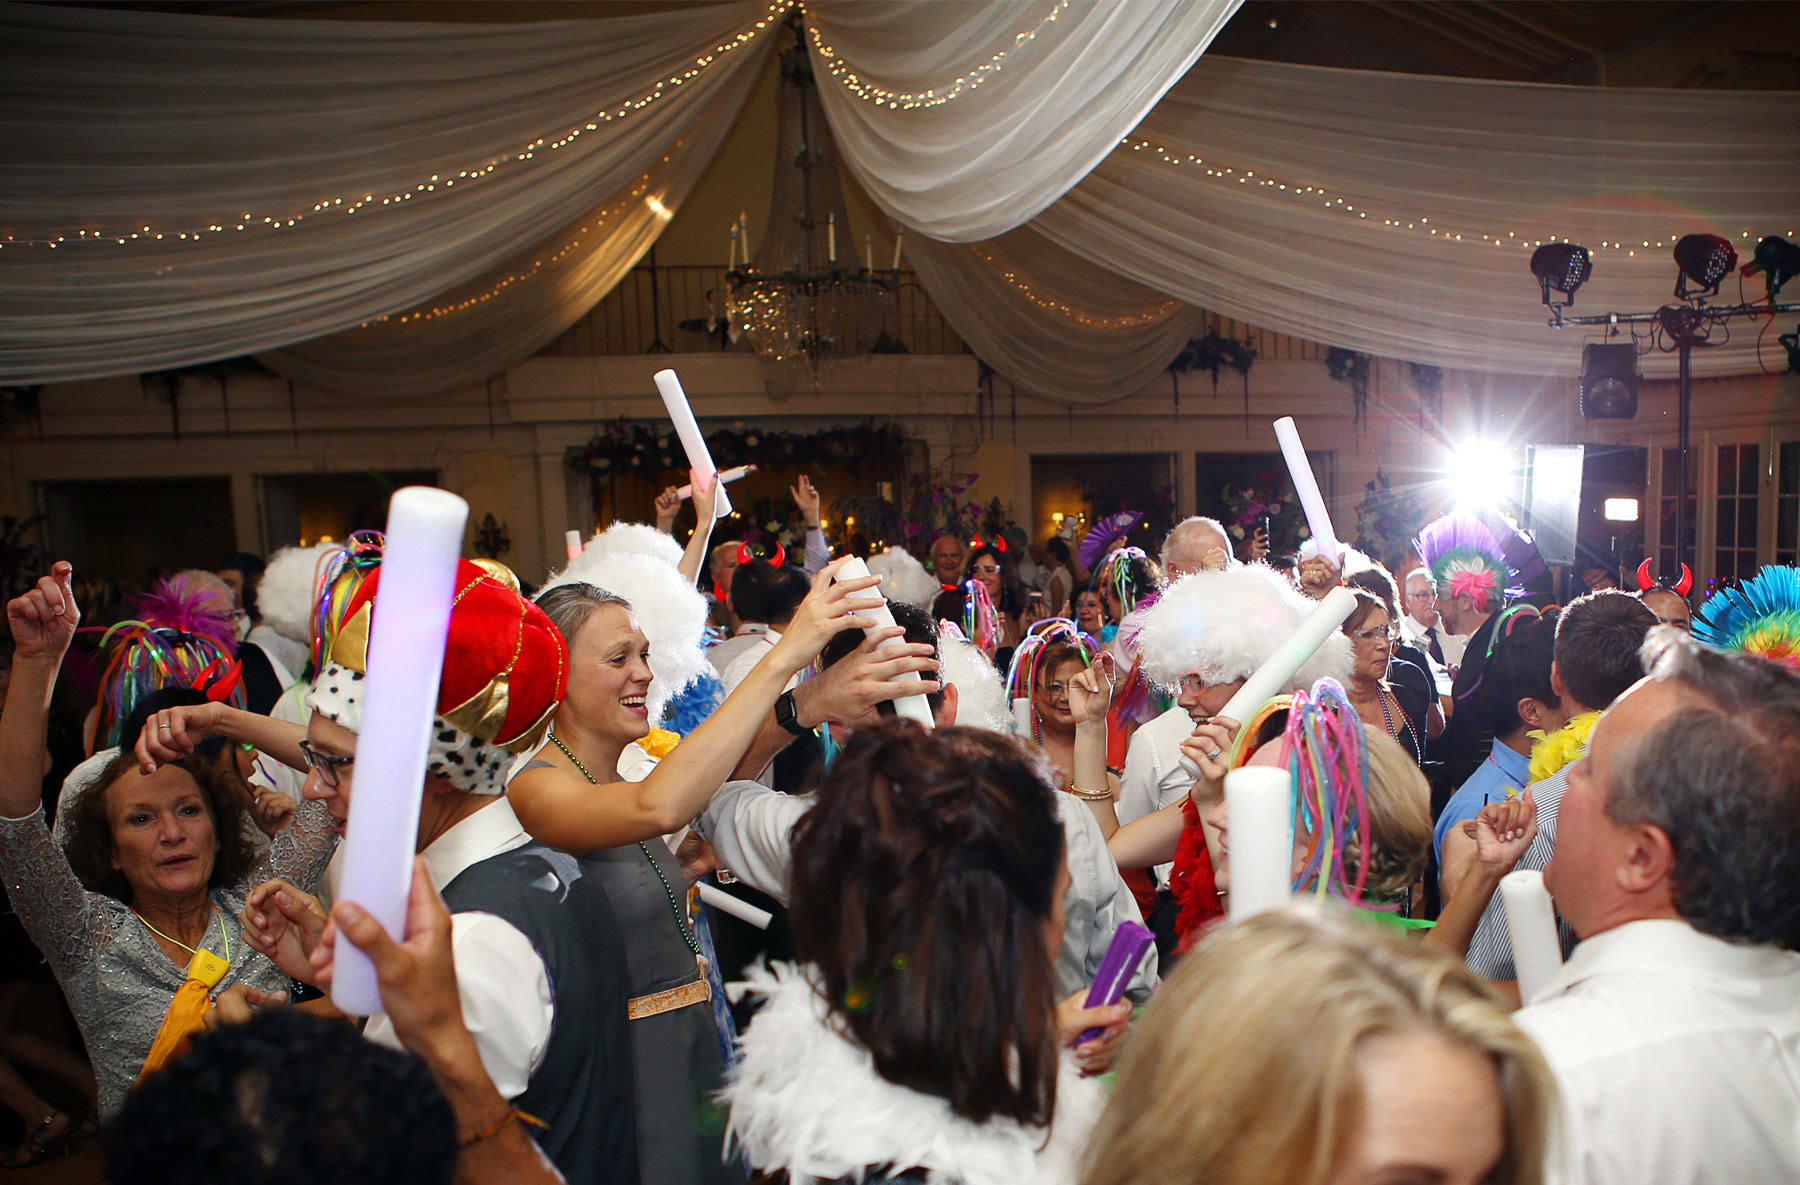 04-Minneapolis-Minnesota-Wedding-Photography-by-Vick-Photography-Crazy-Cam-Reception-Lafayette-Country-Club-Dance.jpg